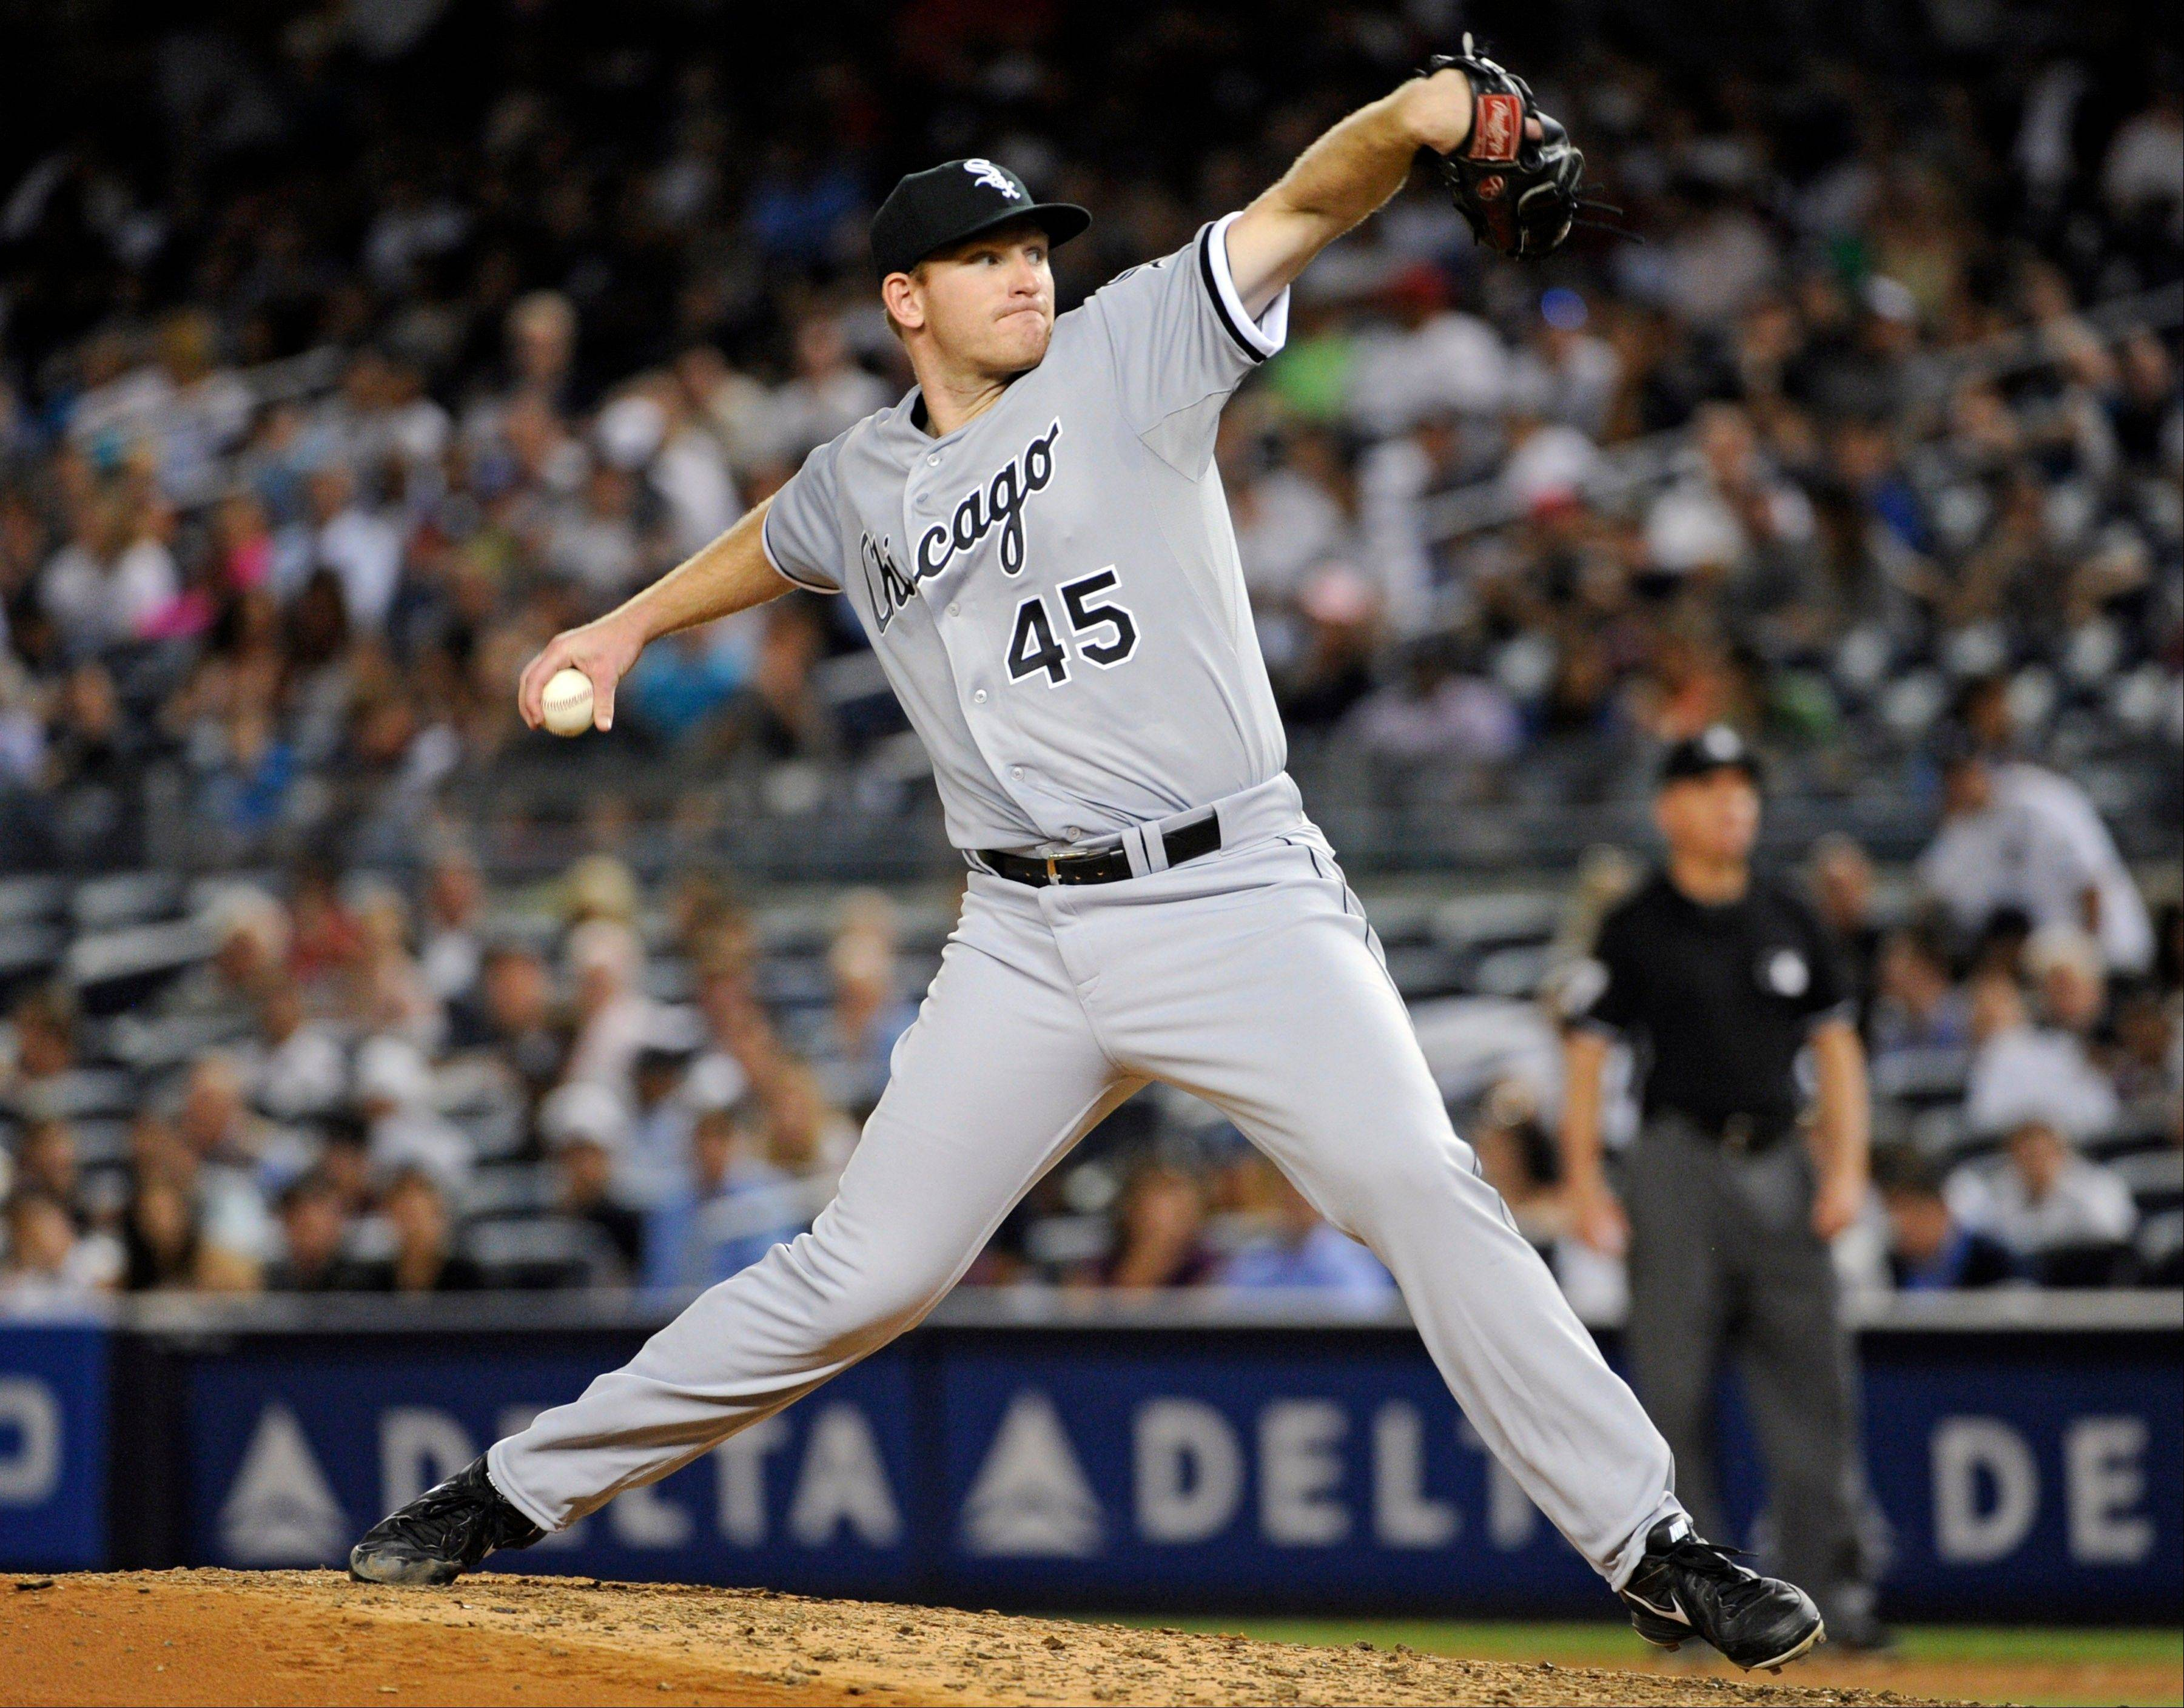 White Sox pitcher Erik Johnson delivers the ball to the New York Yankees during Wednesday night�s game in New York. It was Johnson�s first major-league outing, which the Sox lost 6-5.